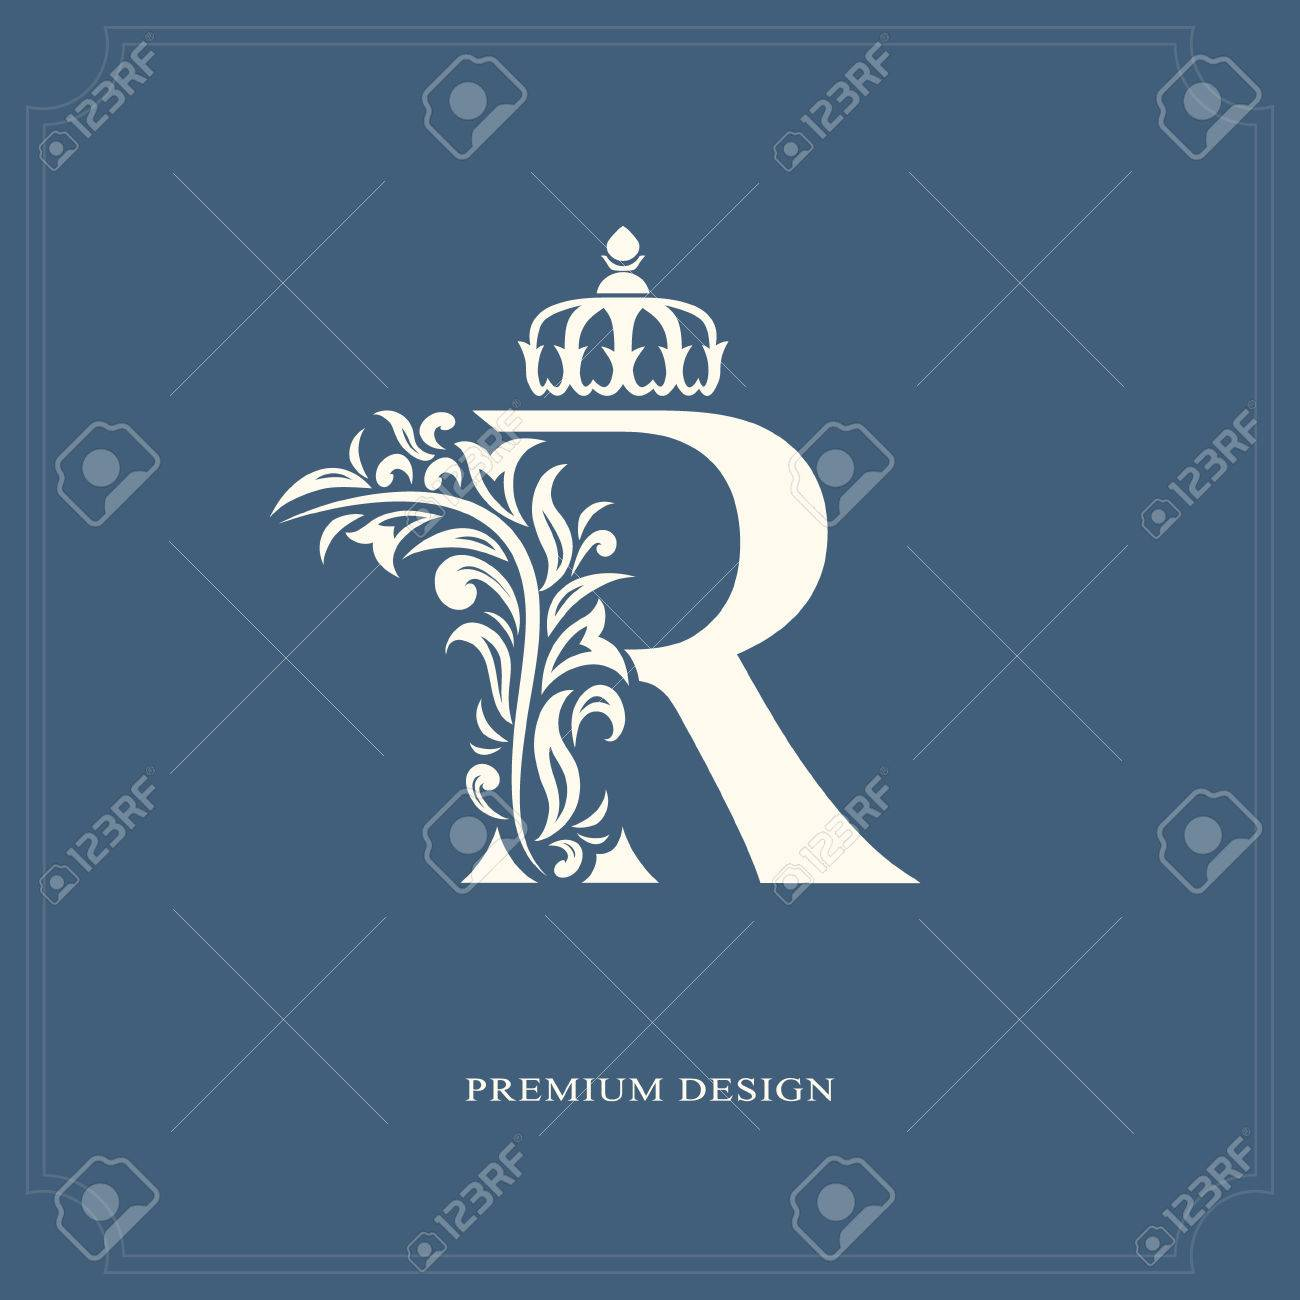 Elegant Letter R With A Crown Graceful Royal Style Calligraphic Beautiful Logo Vintage